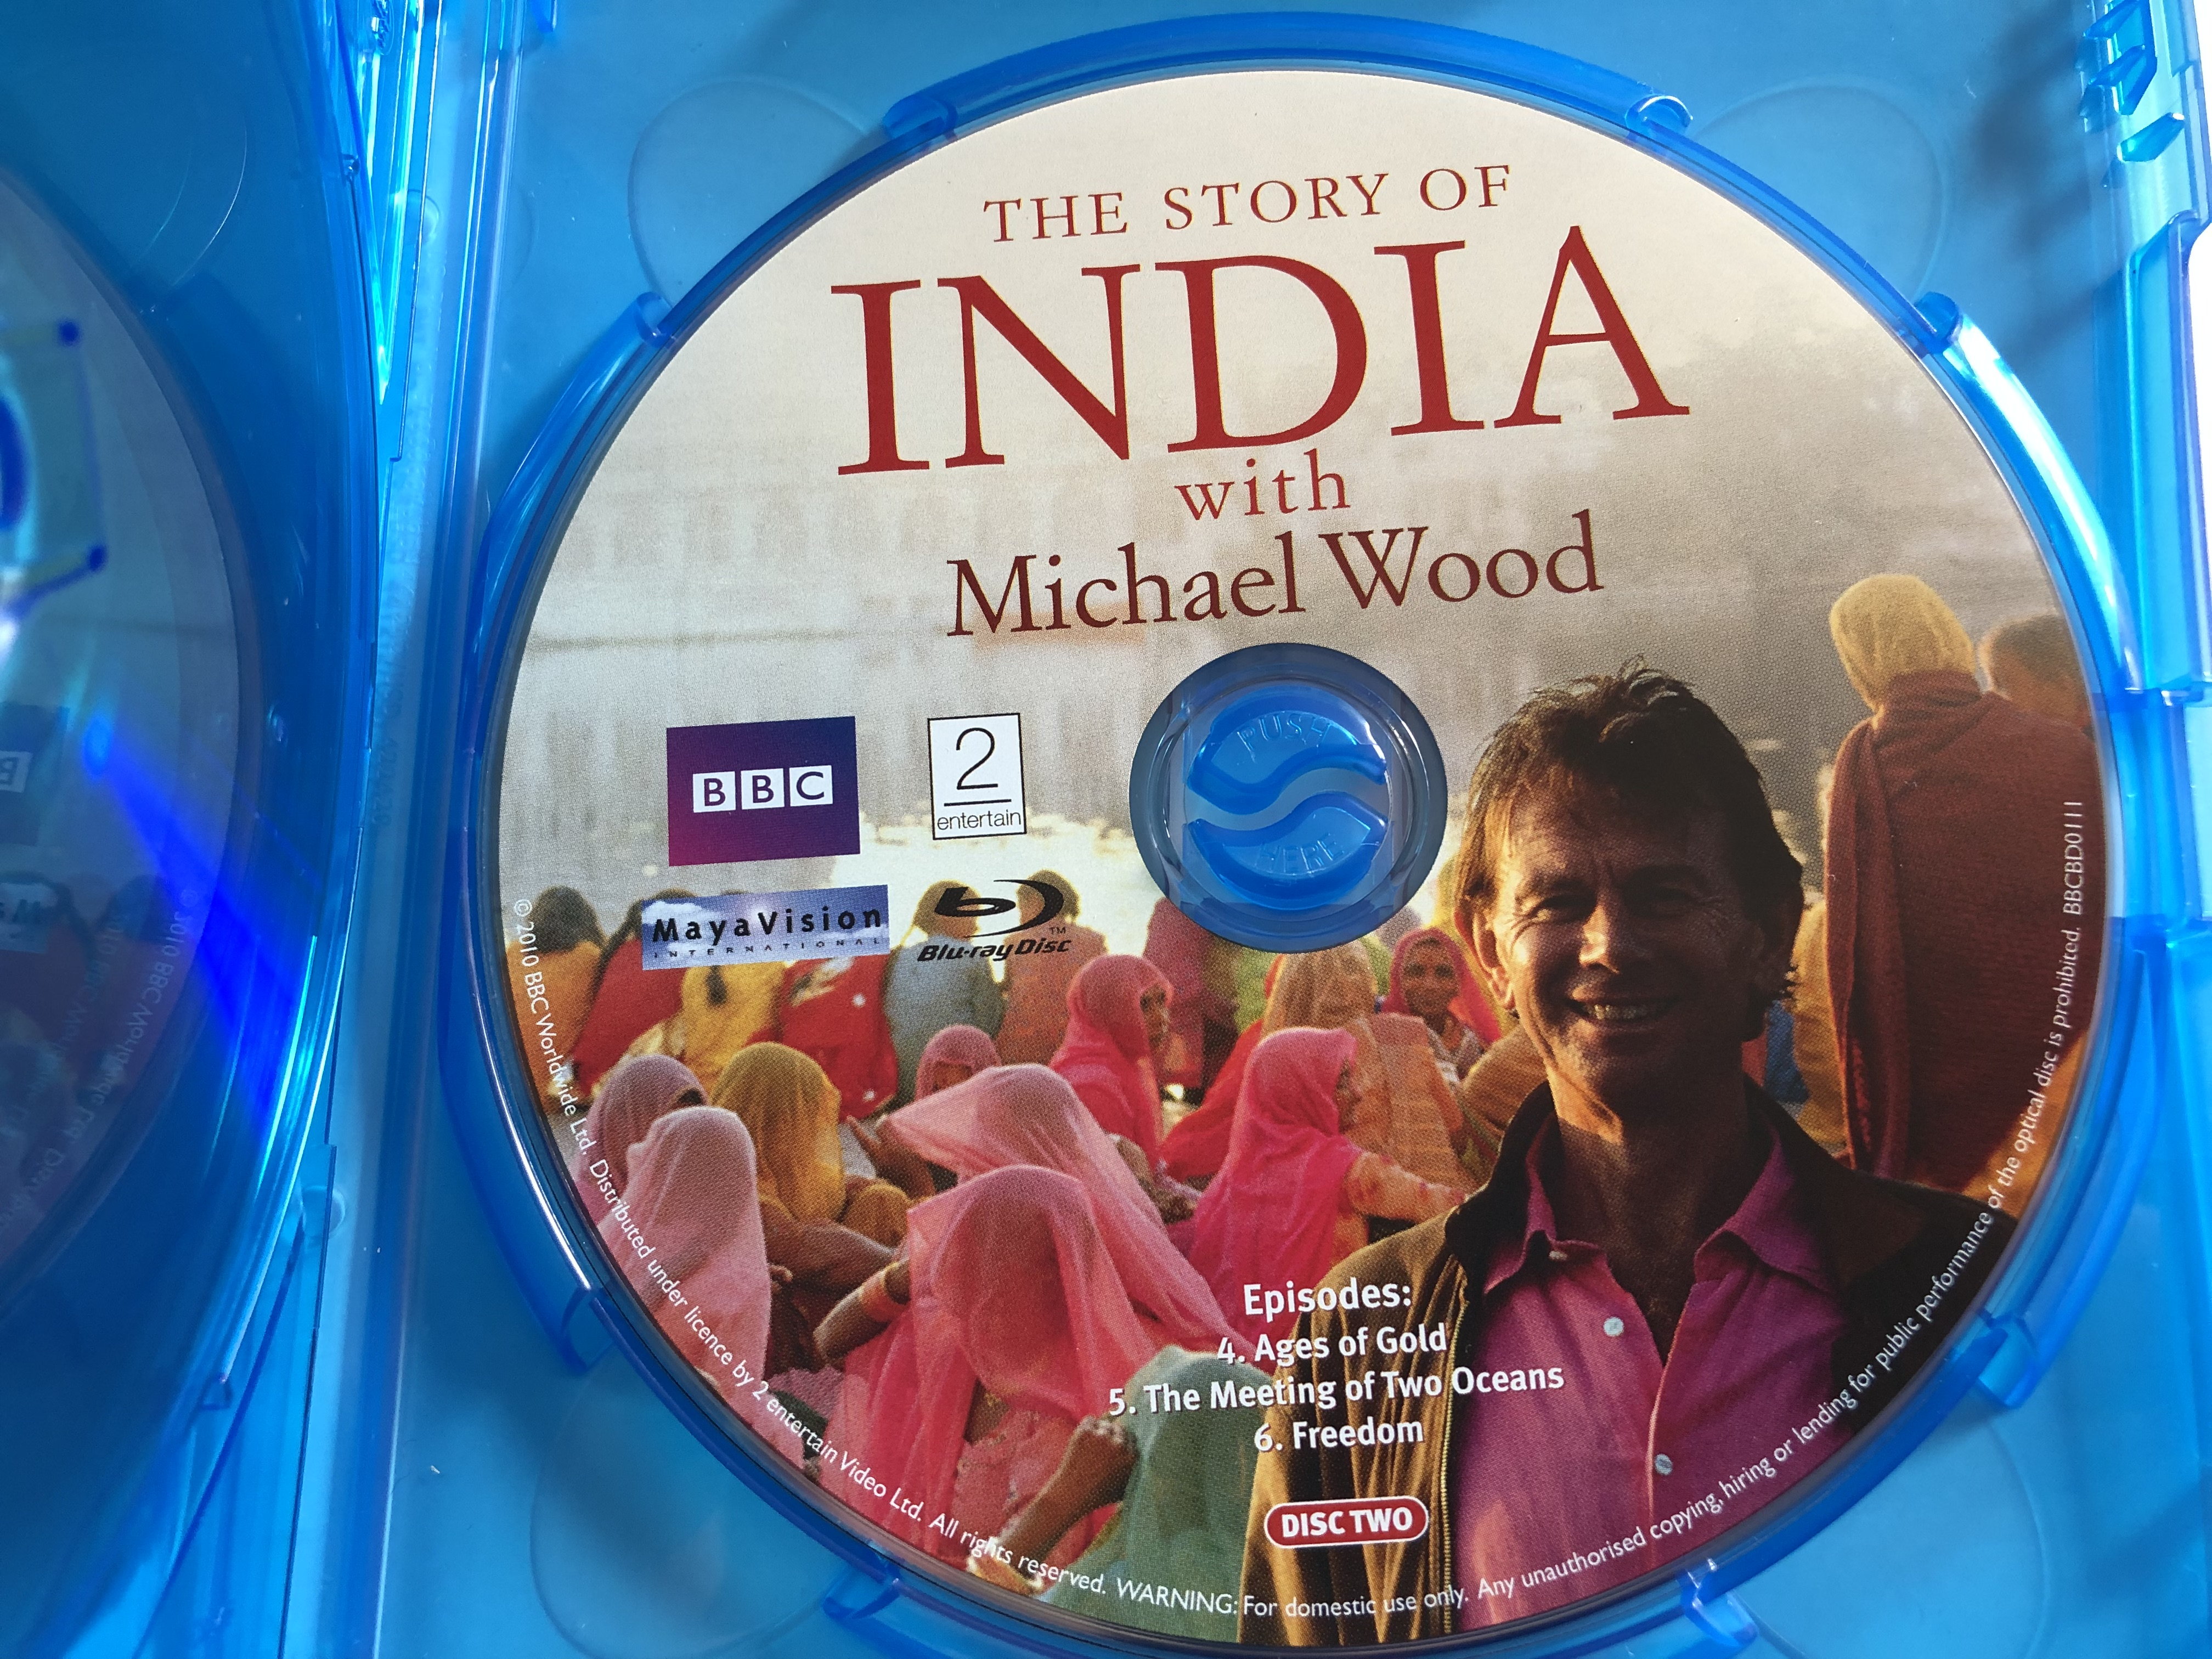 the-story-of-india-with-michael-wood-bluray-a-visual-feast-packed-with-extraordinary-information-bbc-2-disc-set-3-.jpg